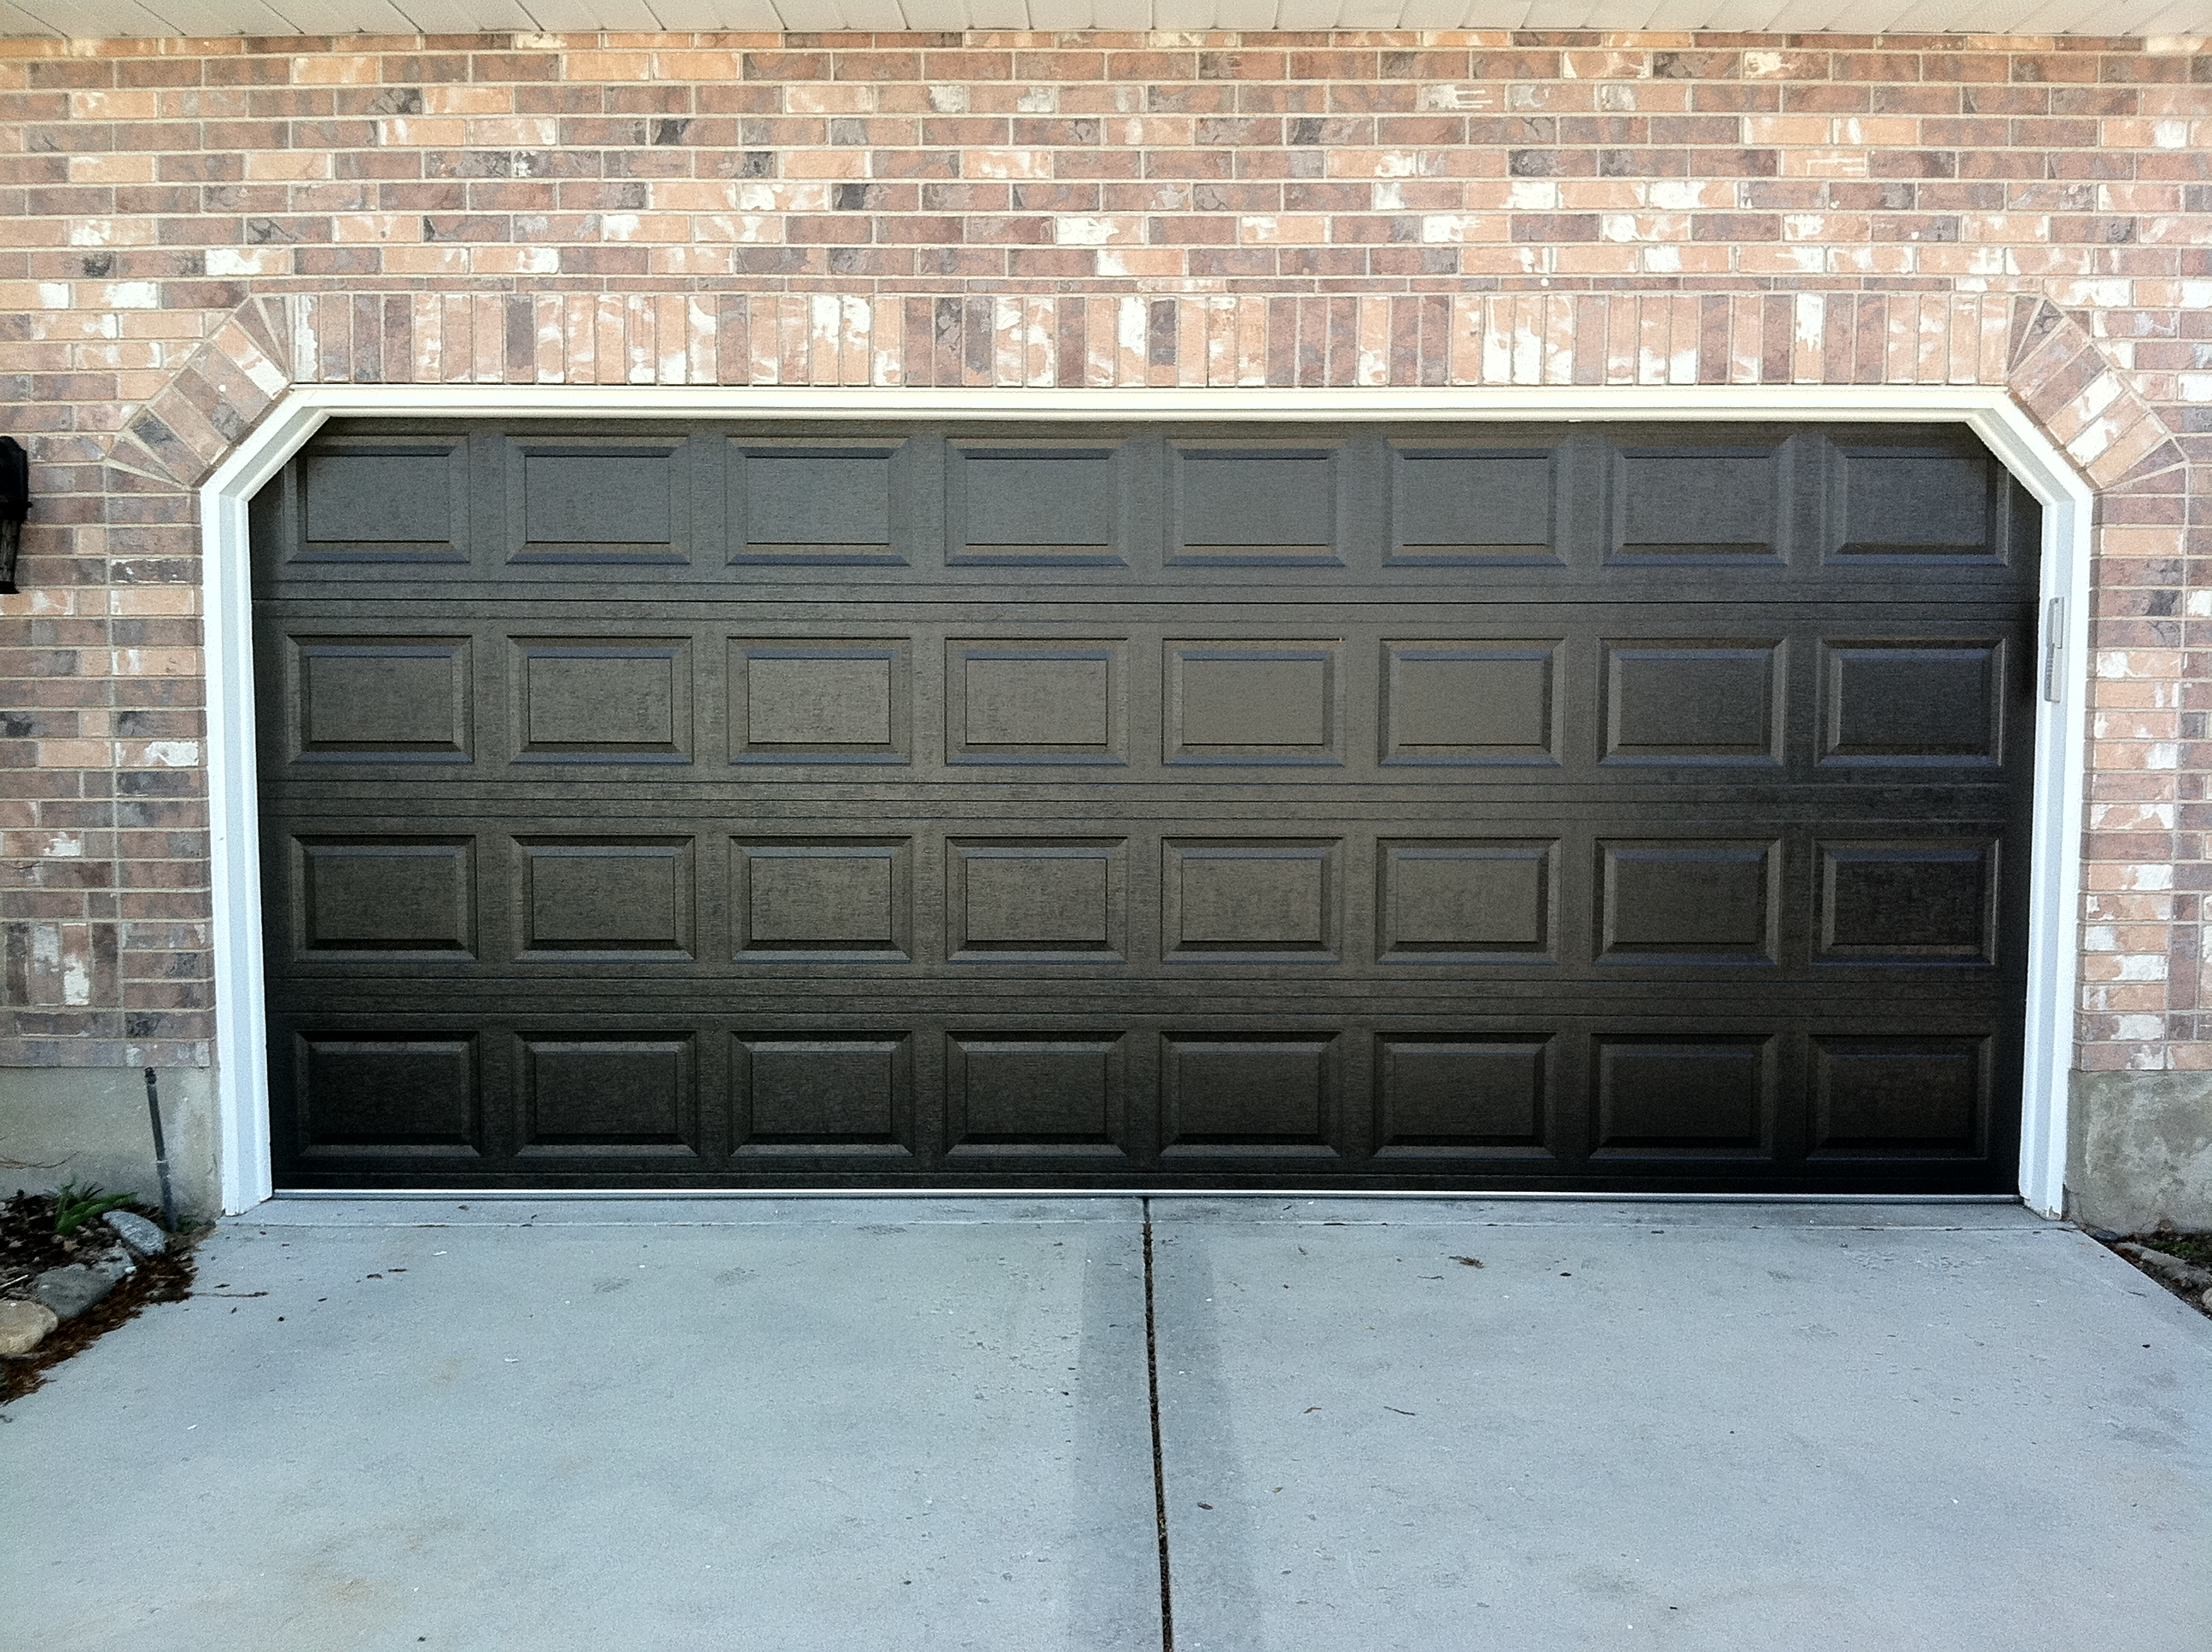 1936 #826649 New Door Sales & Installation A Plus Garage Doors image Salt Lake City Garage Doors 36832592